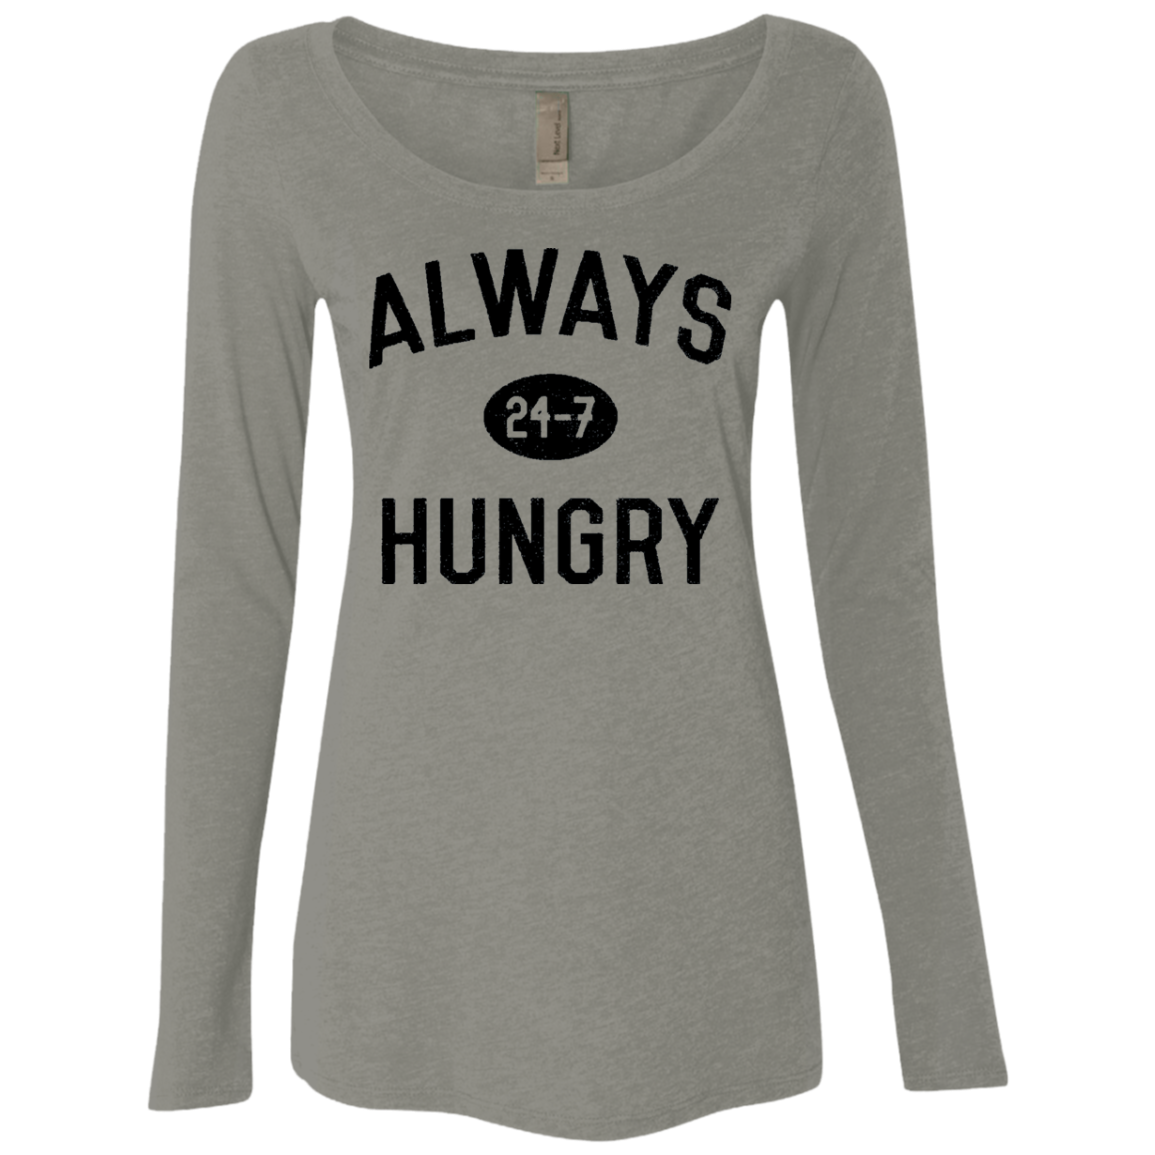 Hungry 247 Women's Long Sleeve Tee - Trendy Tees